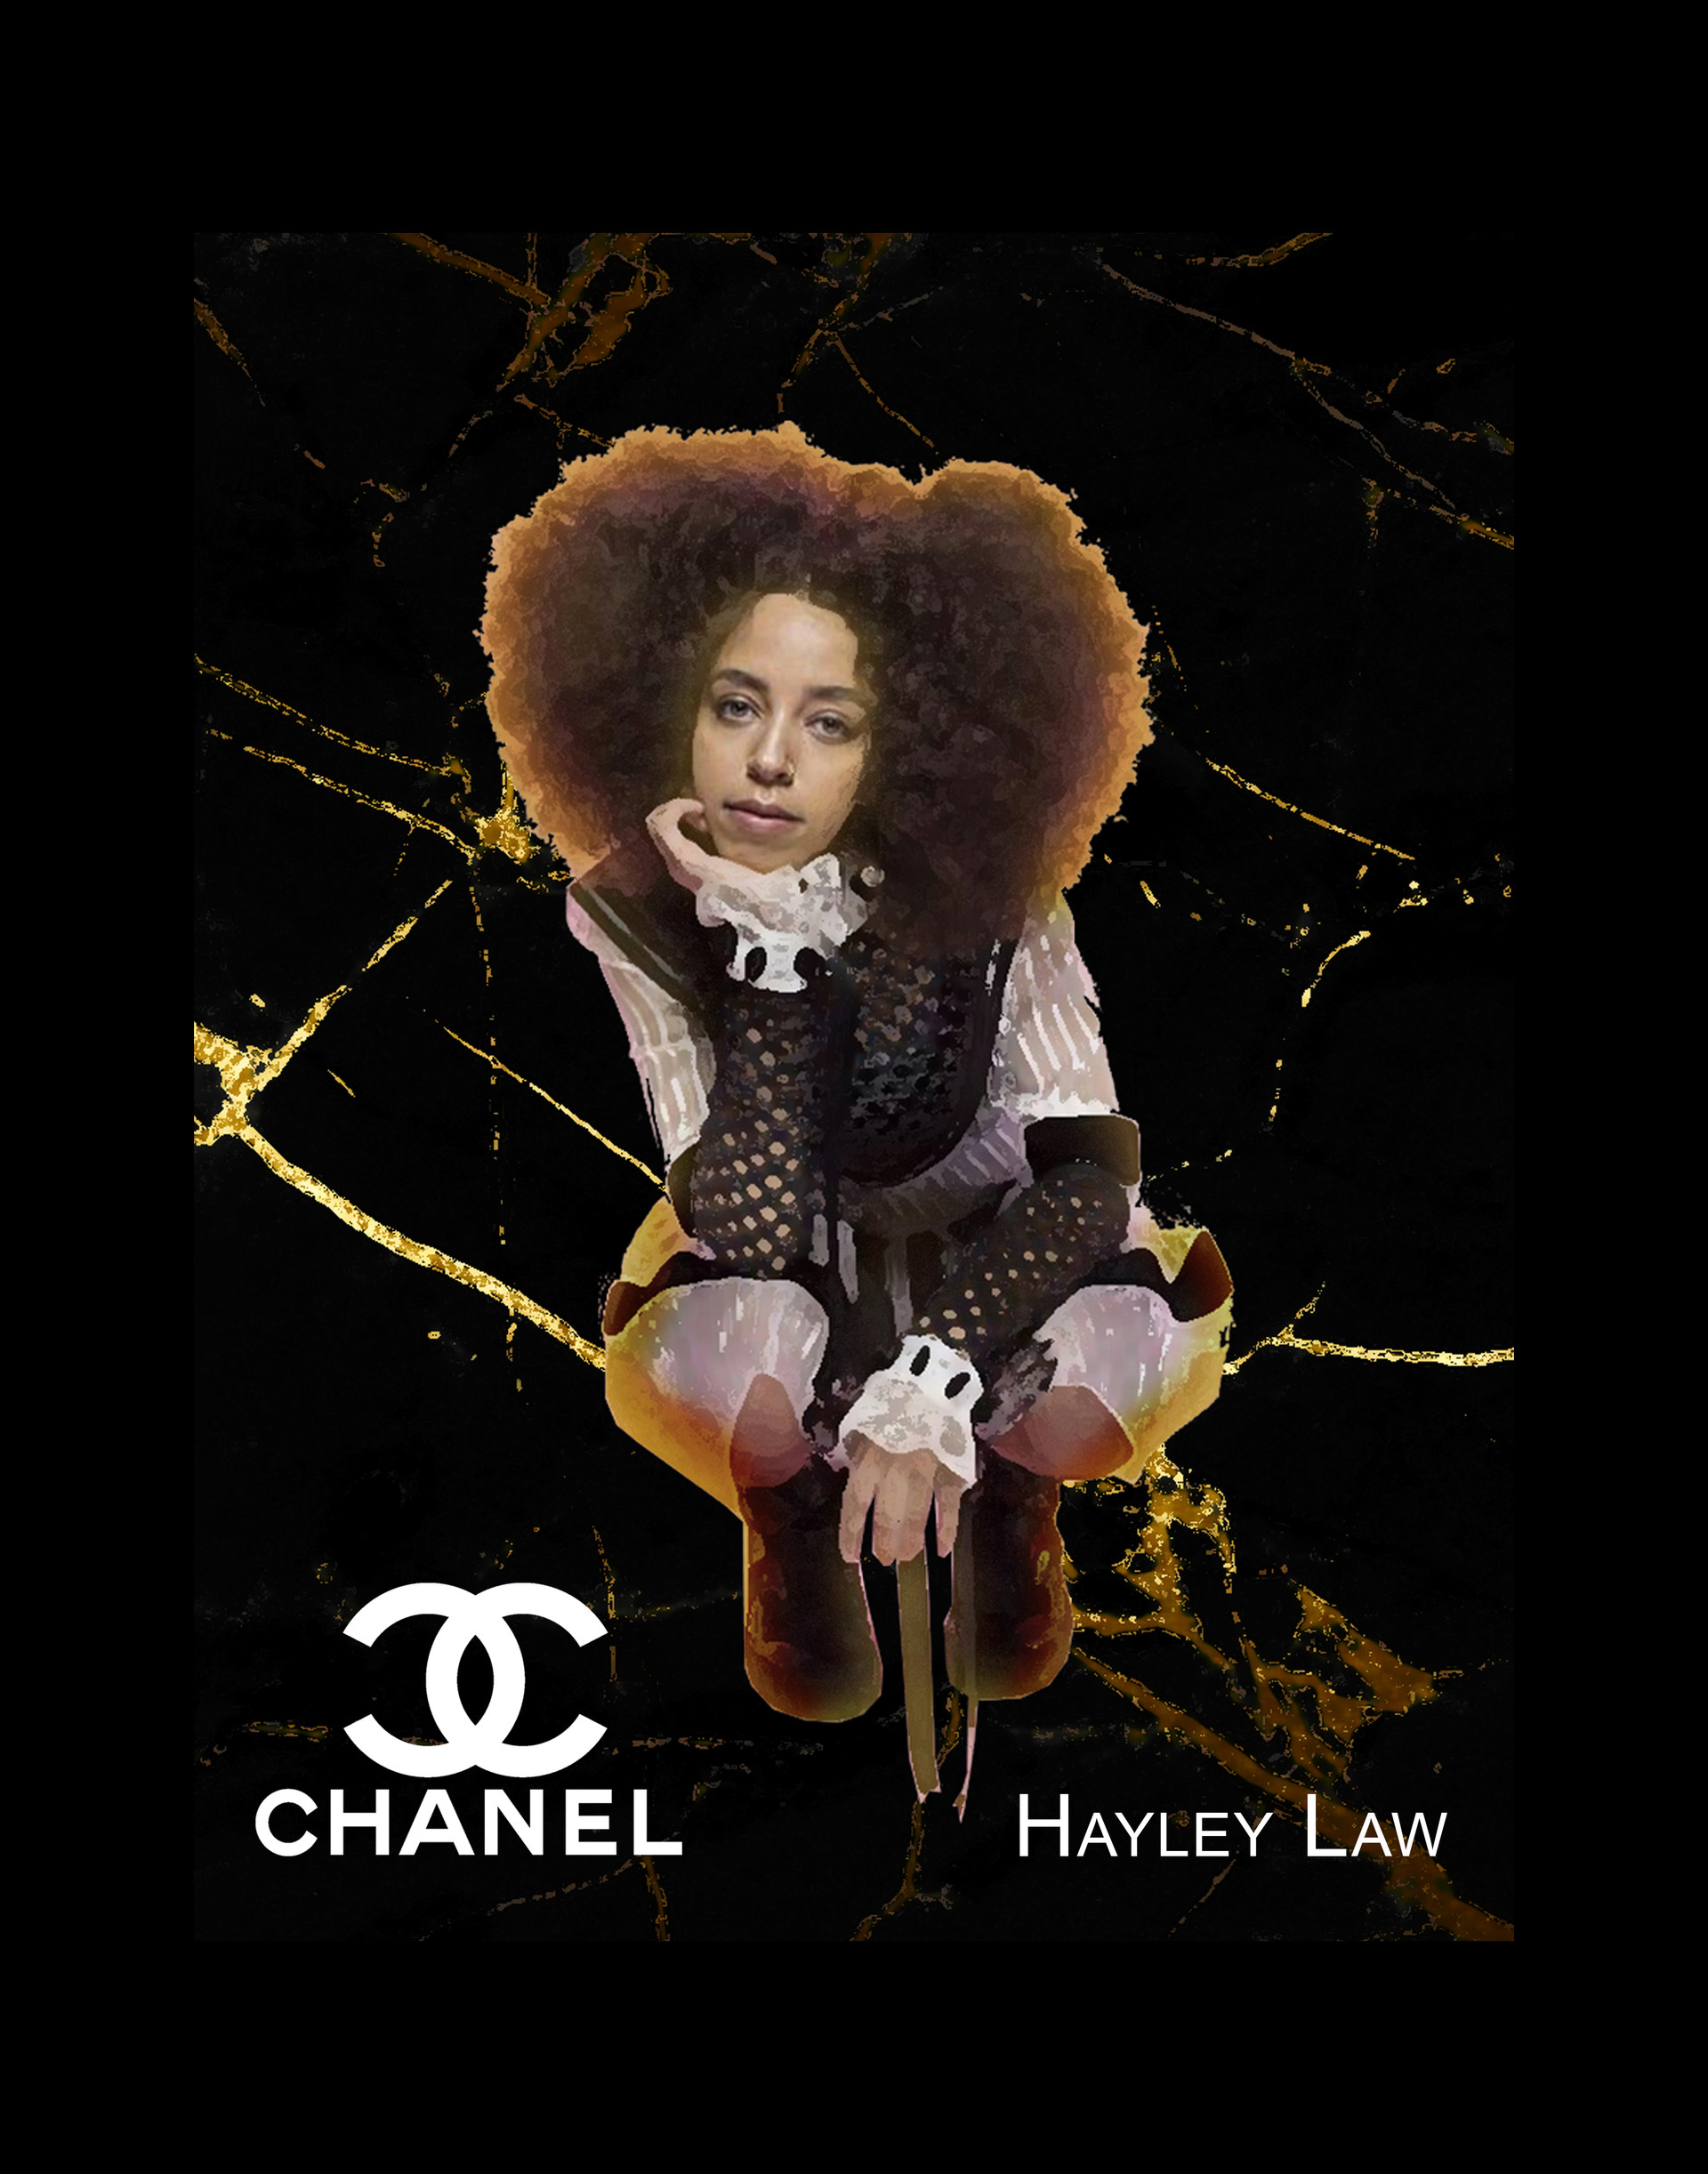 Chanel Inspiration Muse: Hayley Law from 'Riverdale'